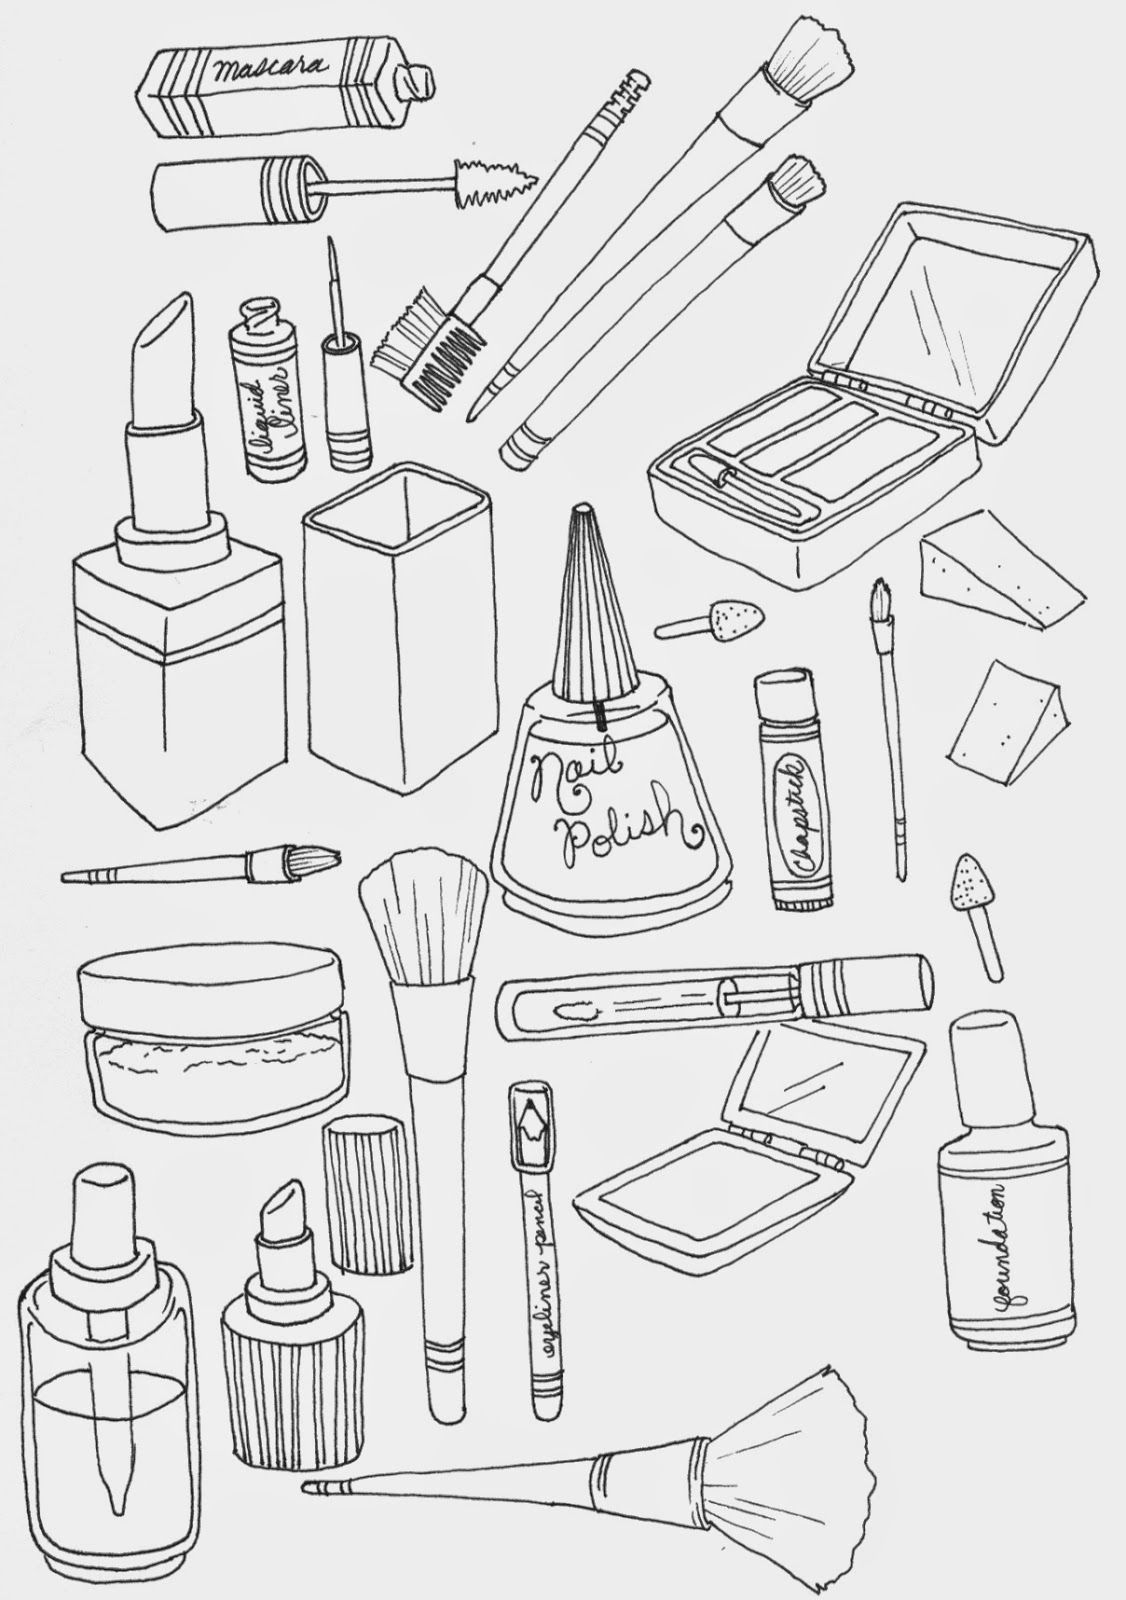 Coloring pages download - Makeup Coloring Pages To Download And Print For Free